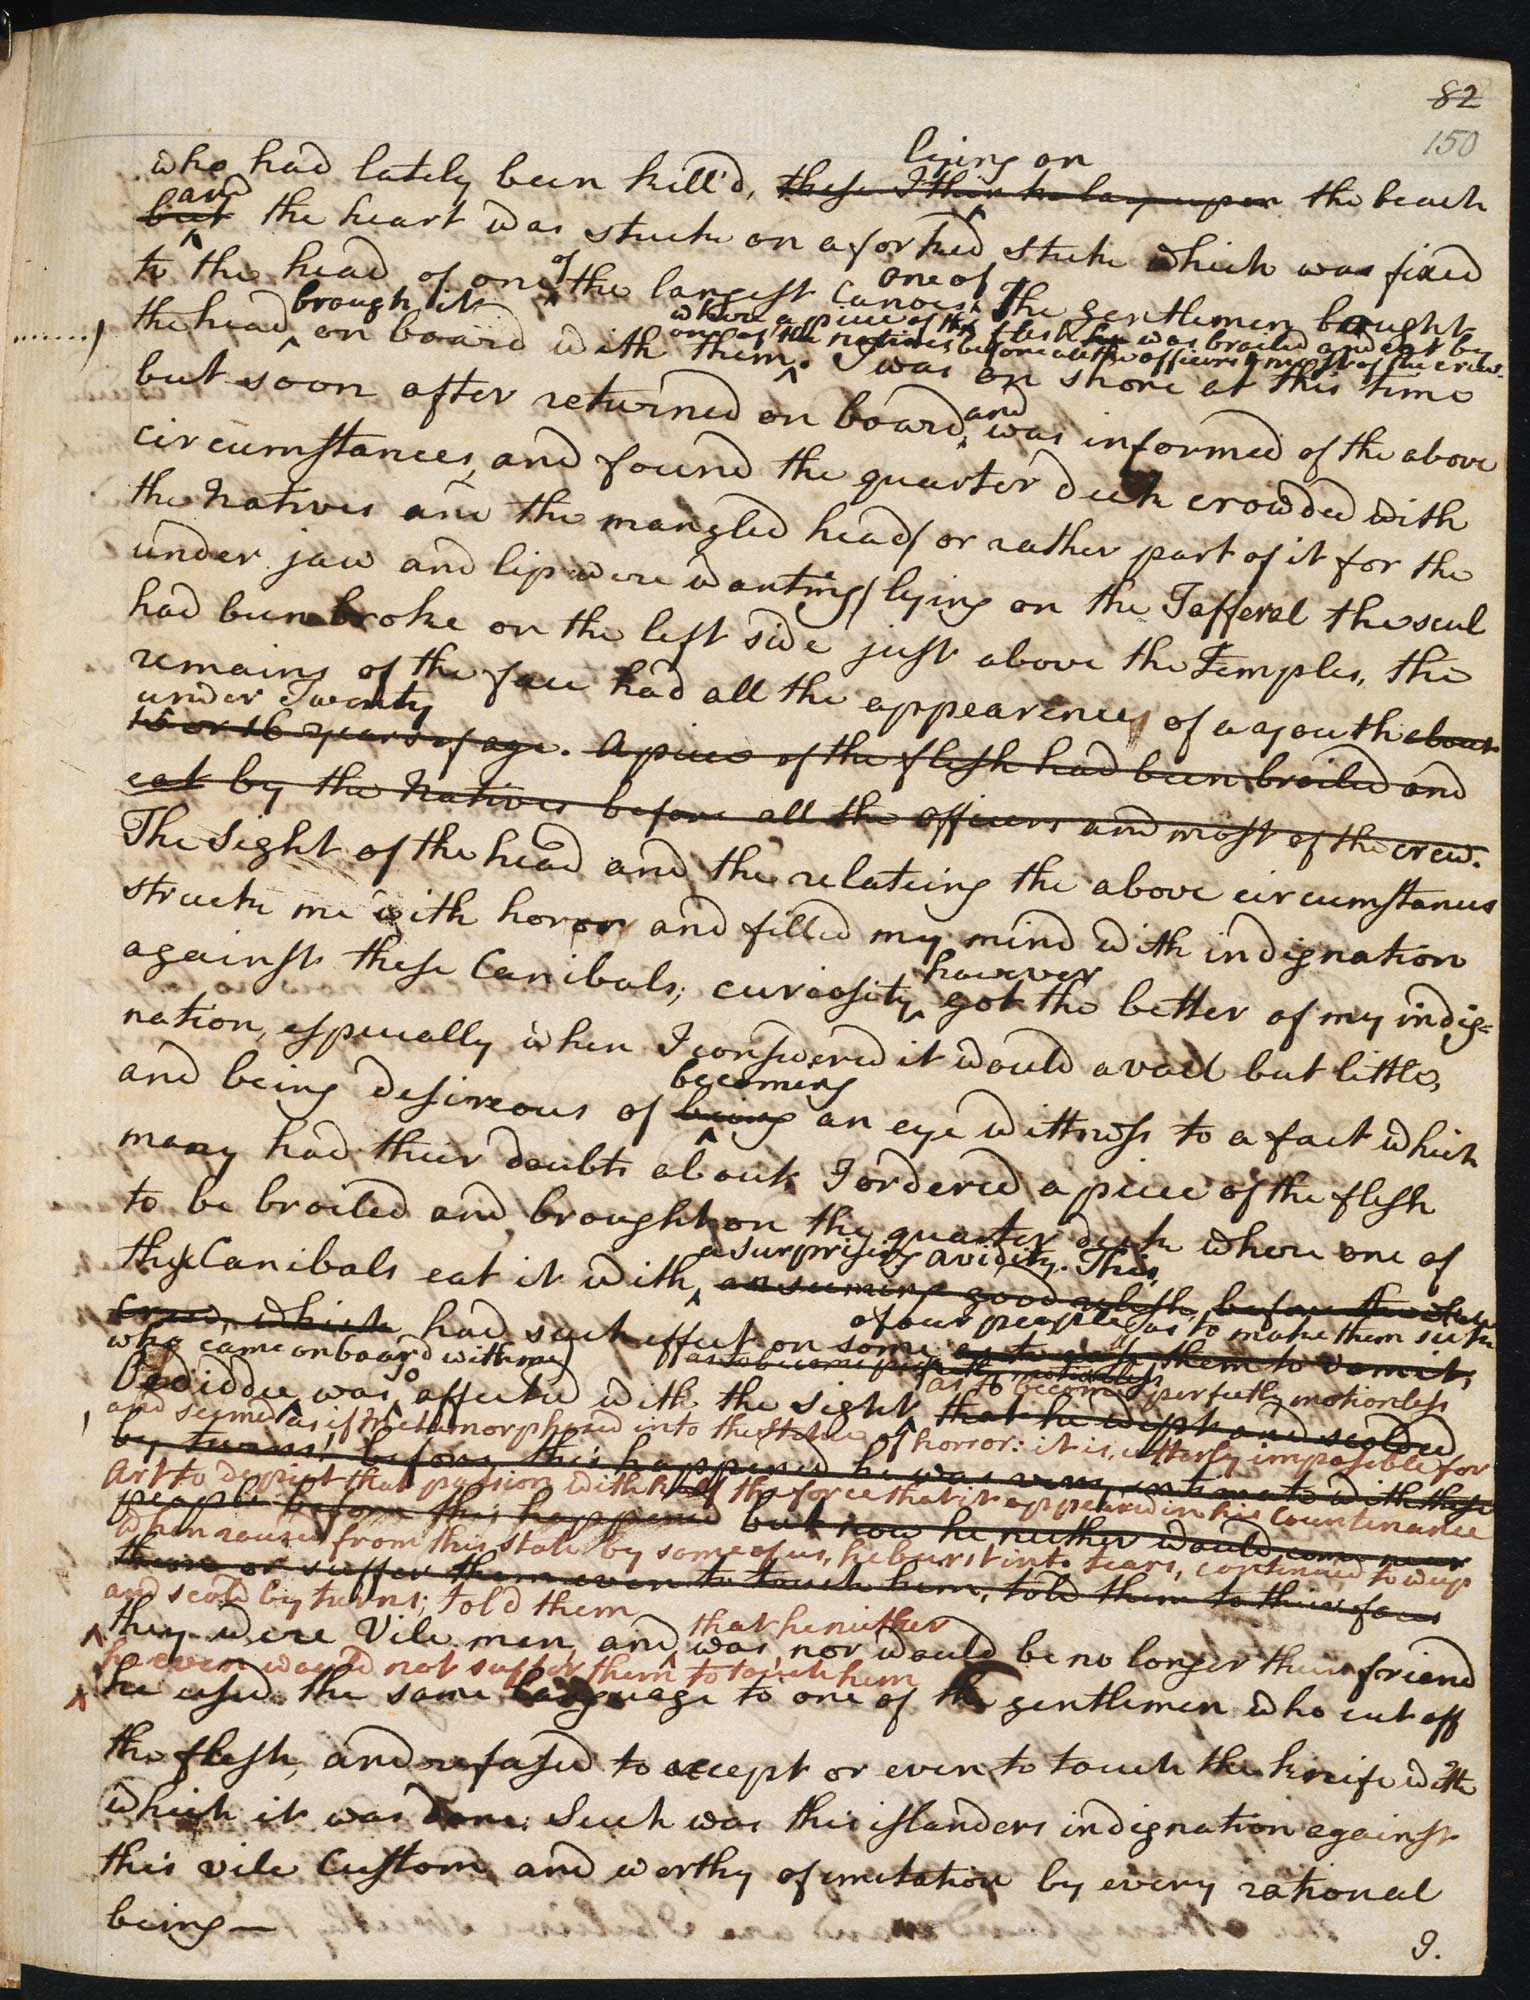 Captain Cook's journal